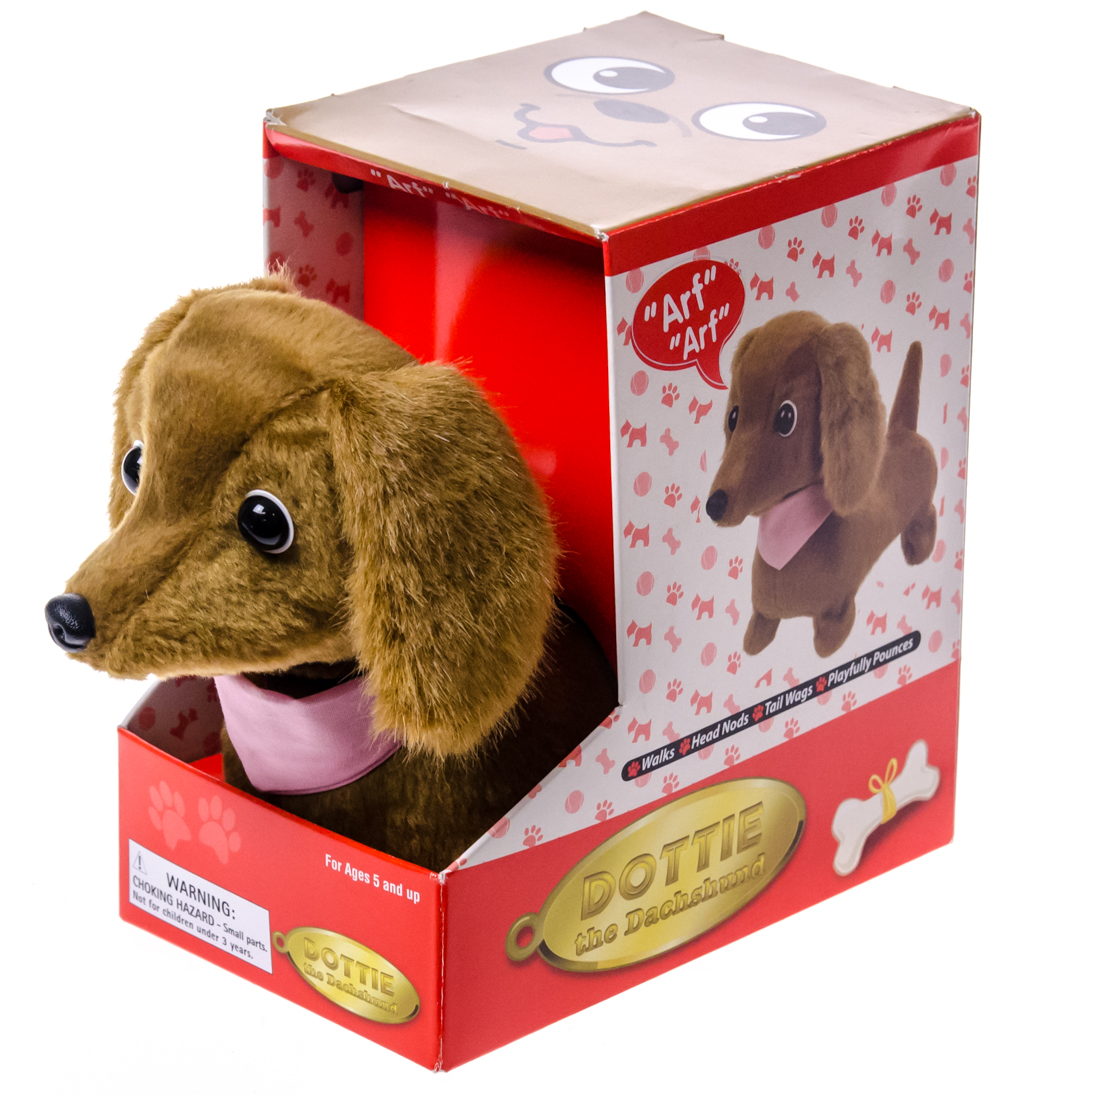 Animated Dottie The Dachshund Toys Motion Er Barrel Old Country